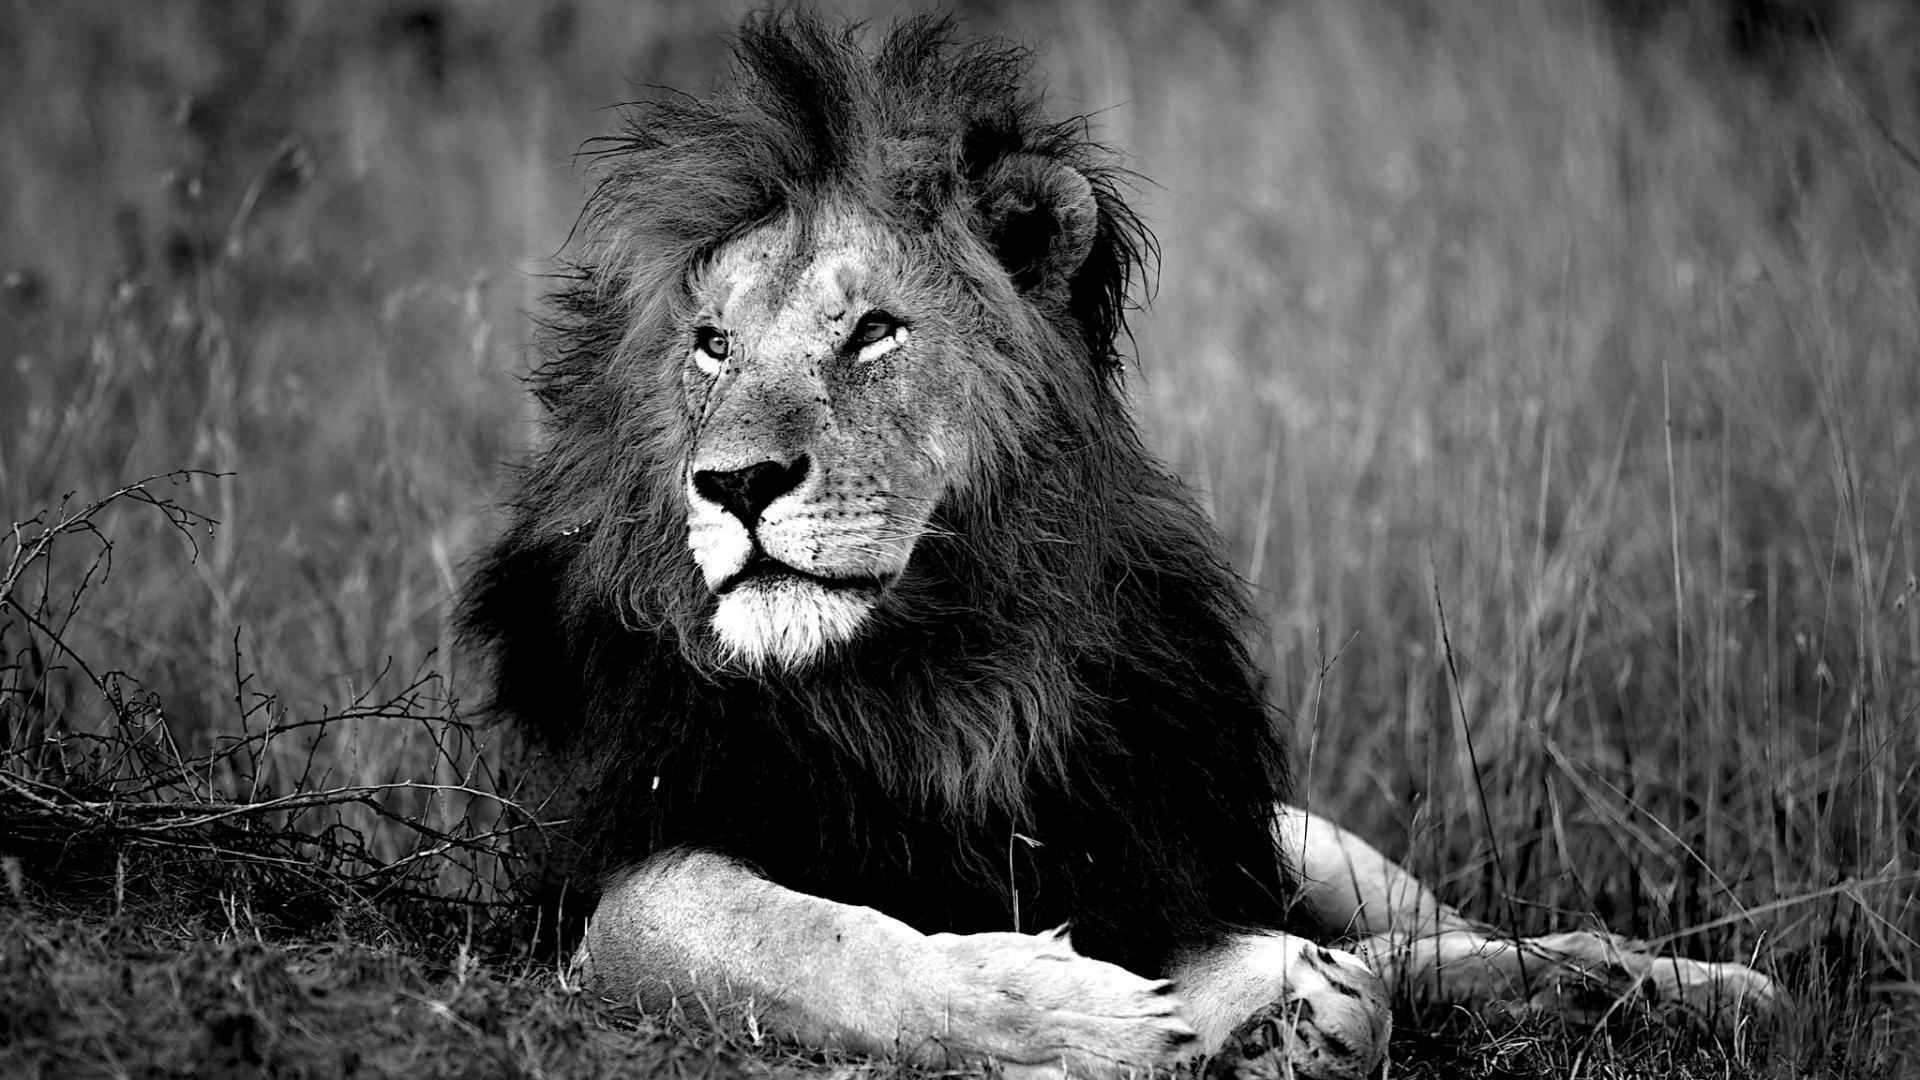 Lion Hd Wallpapers: White Lion Wallpapers (66+ Images